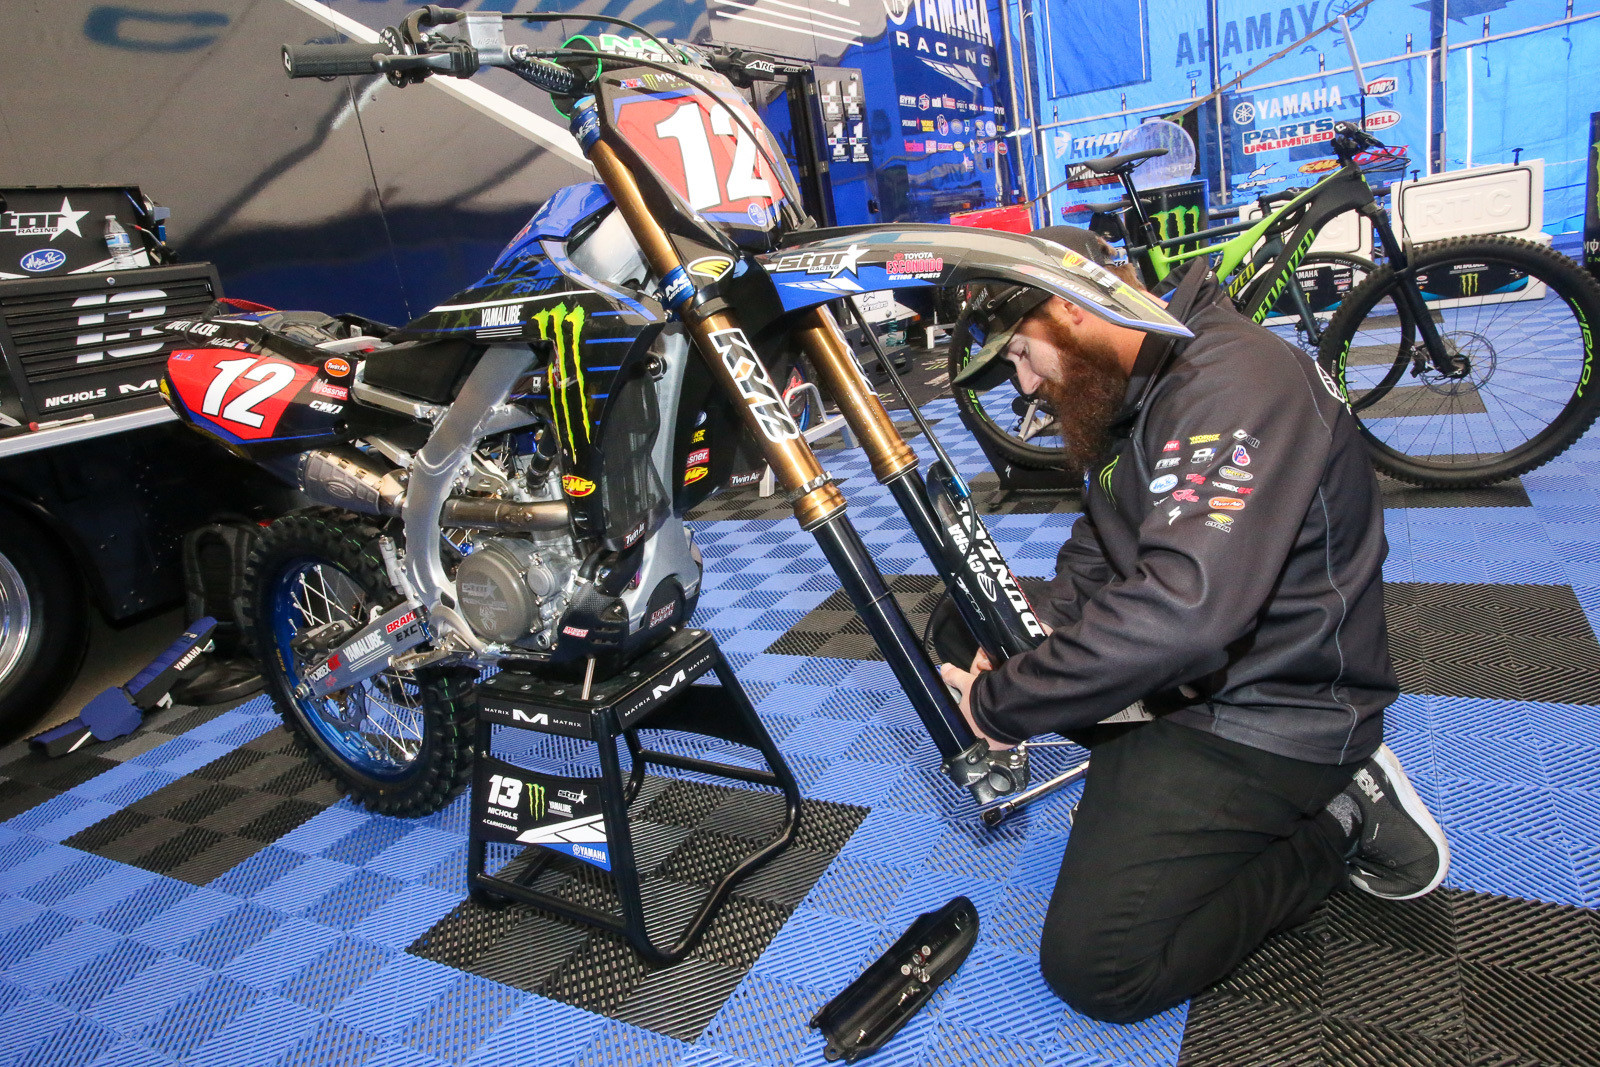 While he waits for Colt Nichols to return to action from an injury, Trevor Carmichael was busy helping out on Shane McElrath's backup bike. Shane took over the 250 East lead last week with his win in Tampa.